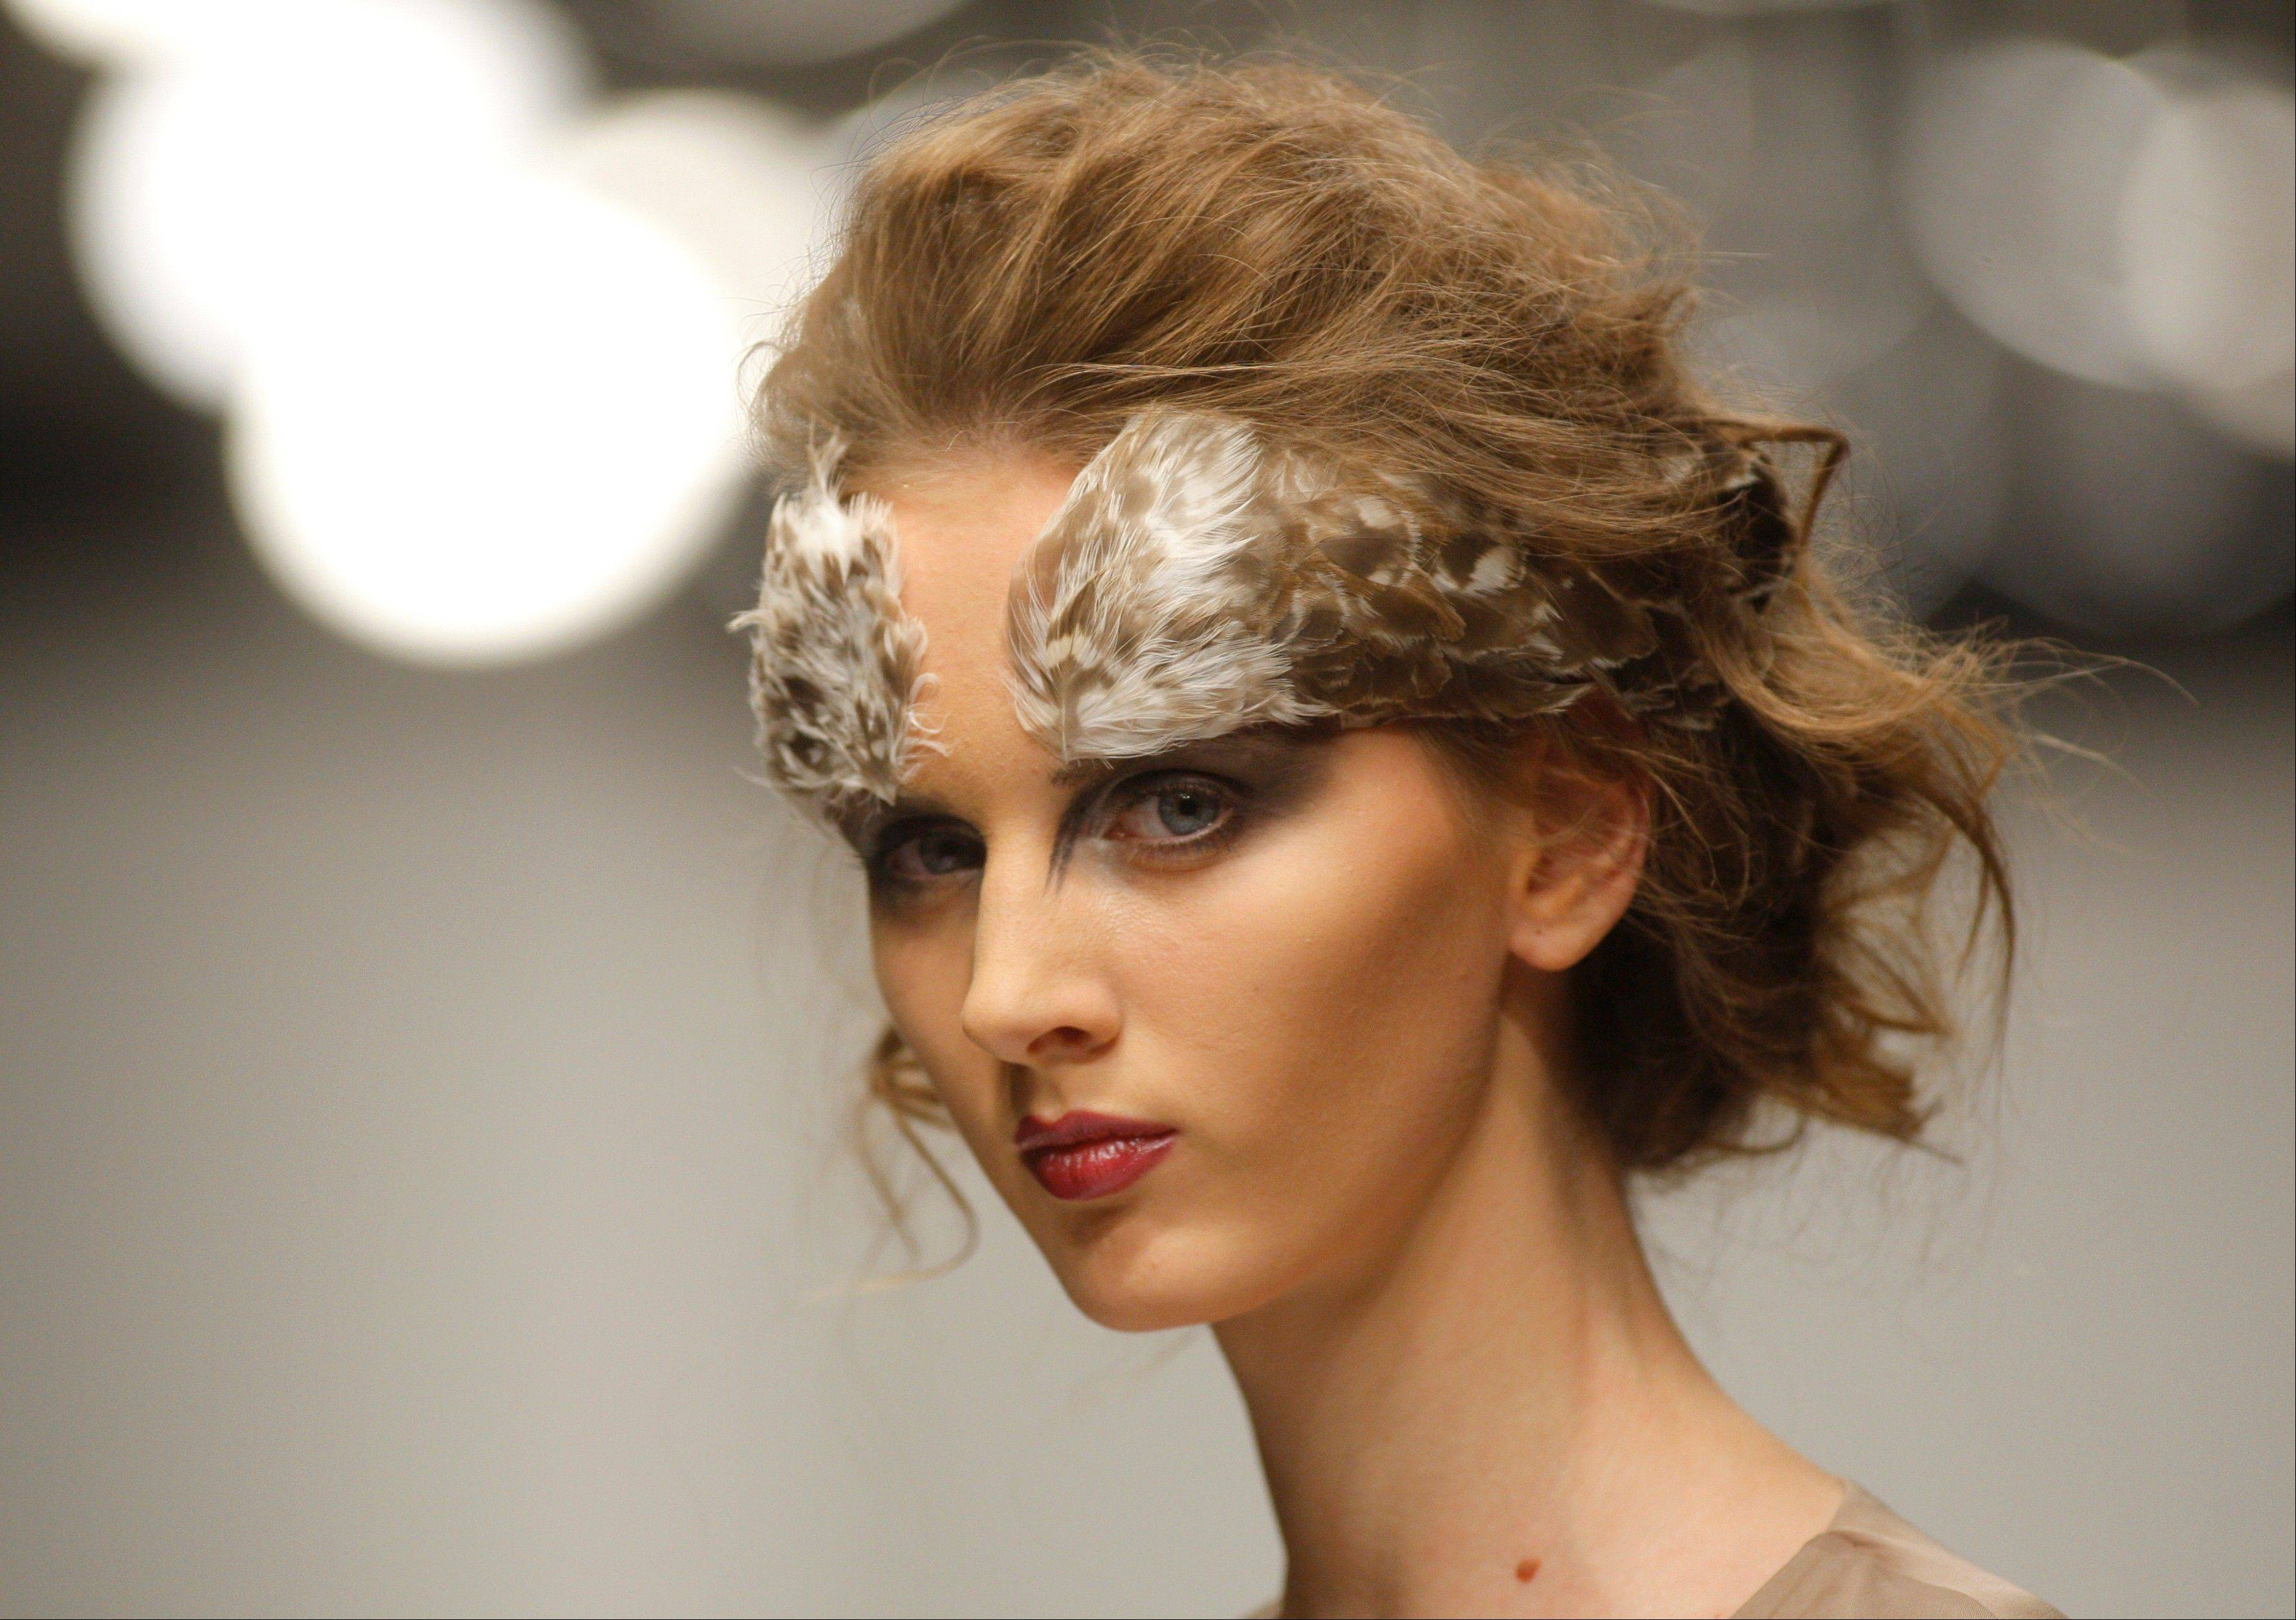 A model presents a creation by designer Yulia Latushkina during Belarus Fashion Week in Minsk, Belarus, Sunday, Oct. 23, 2011.